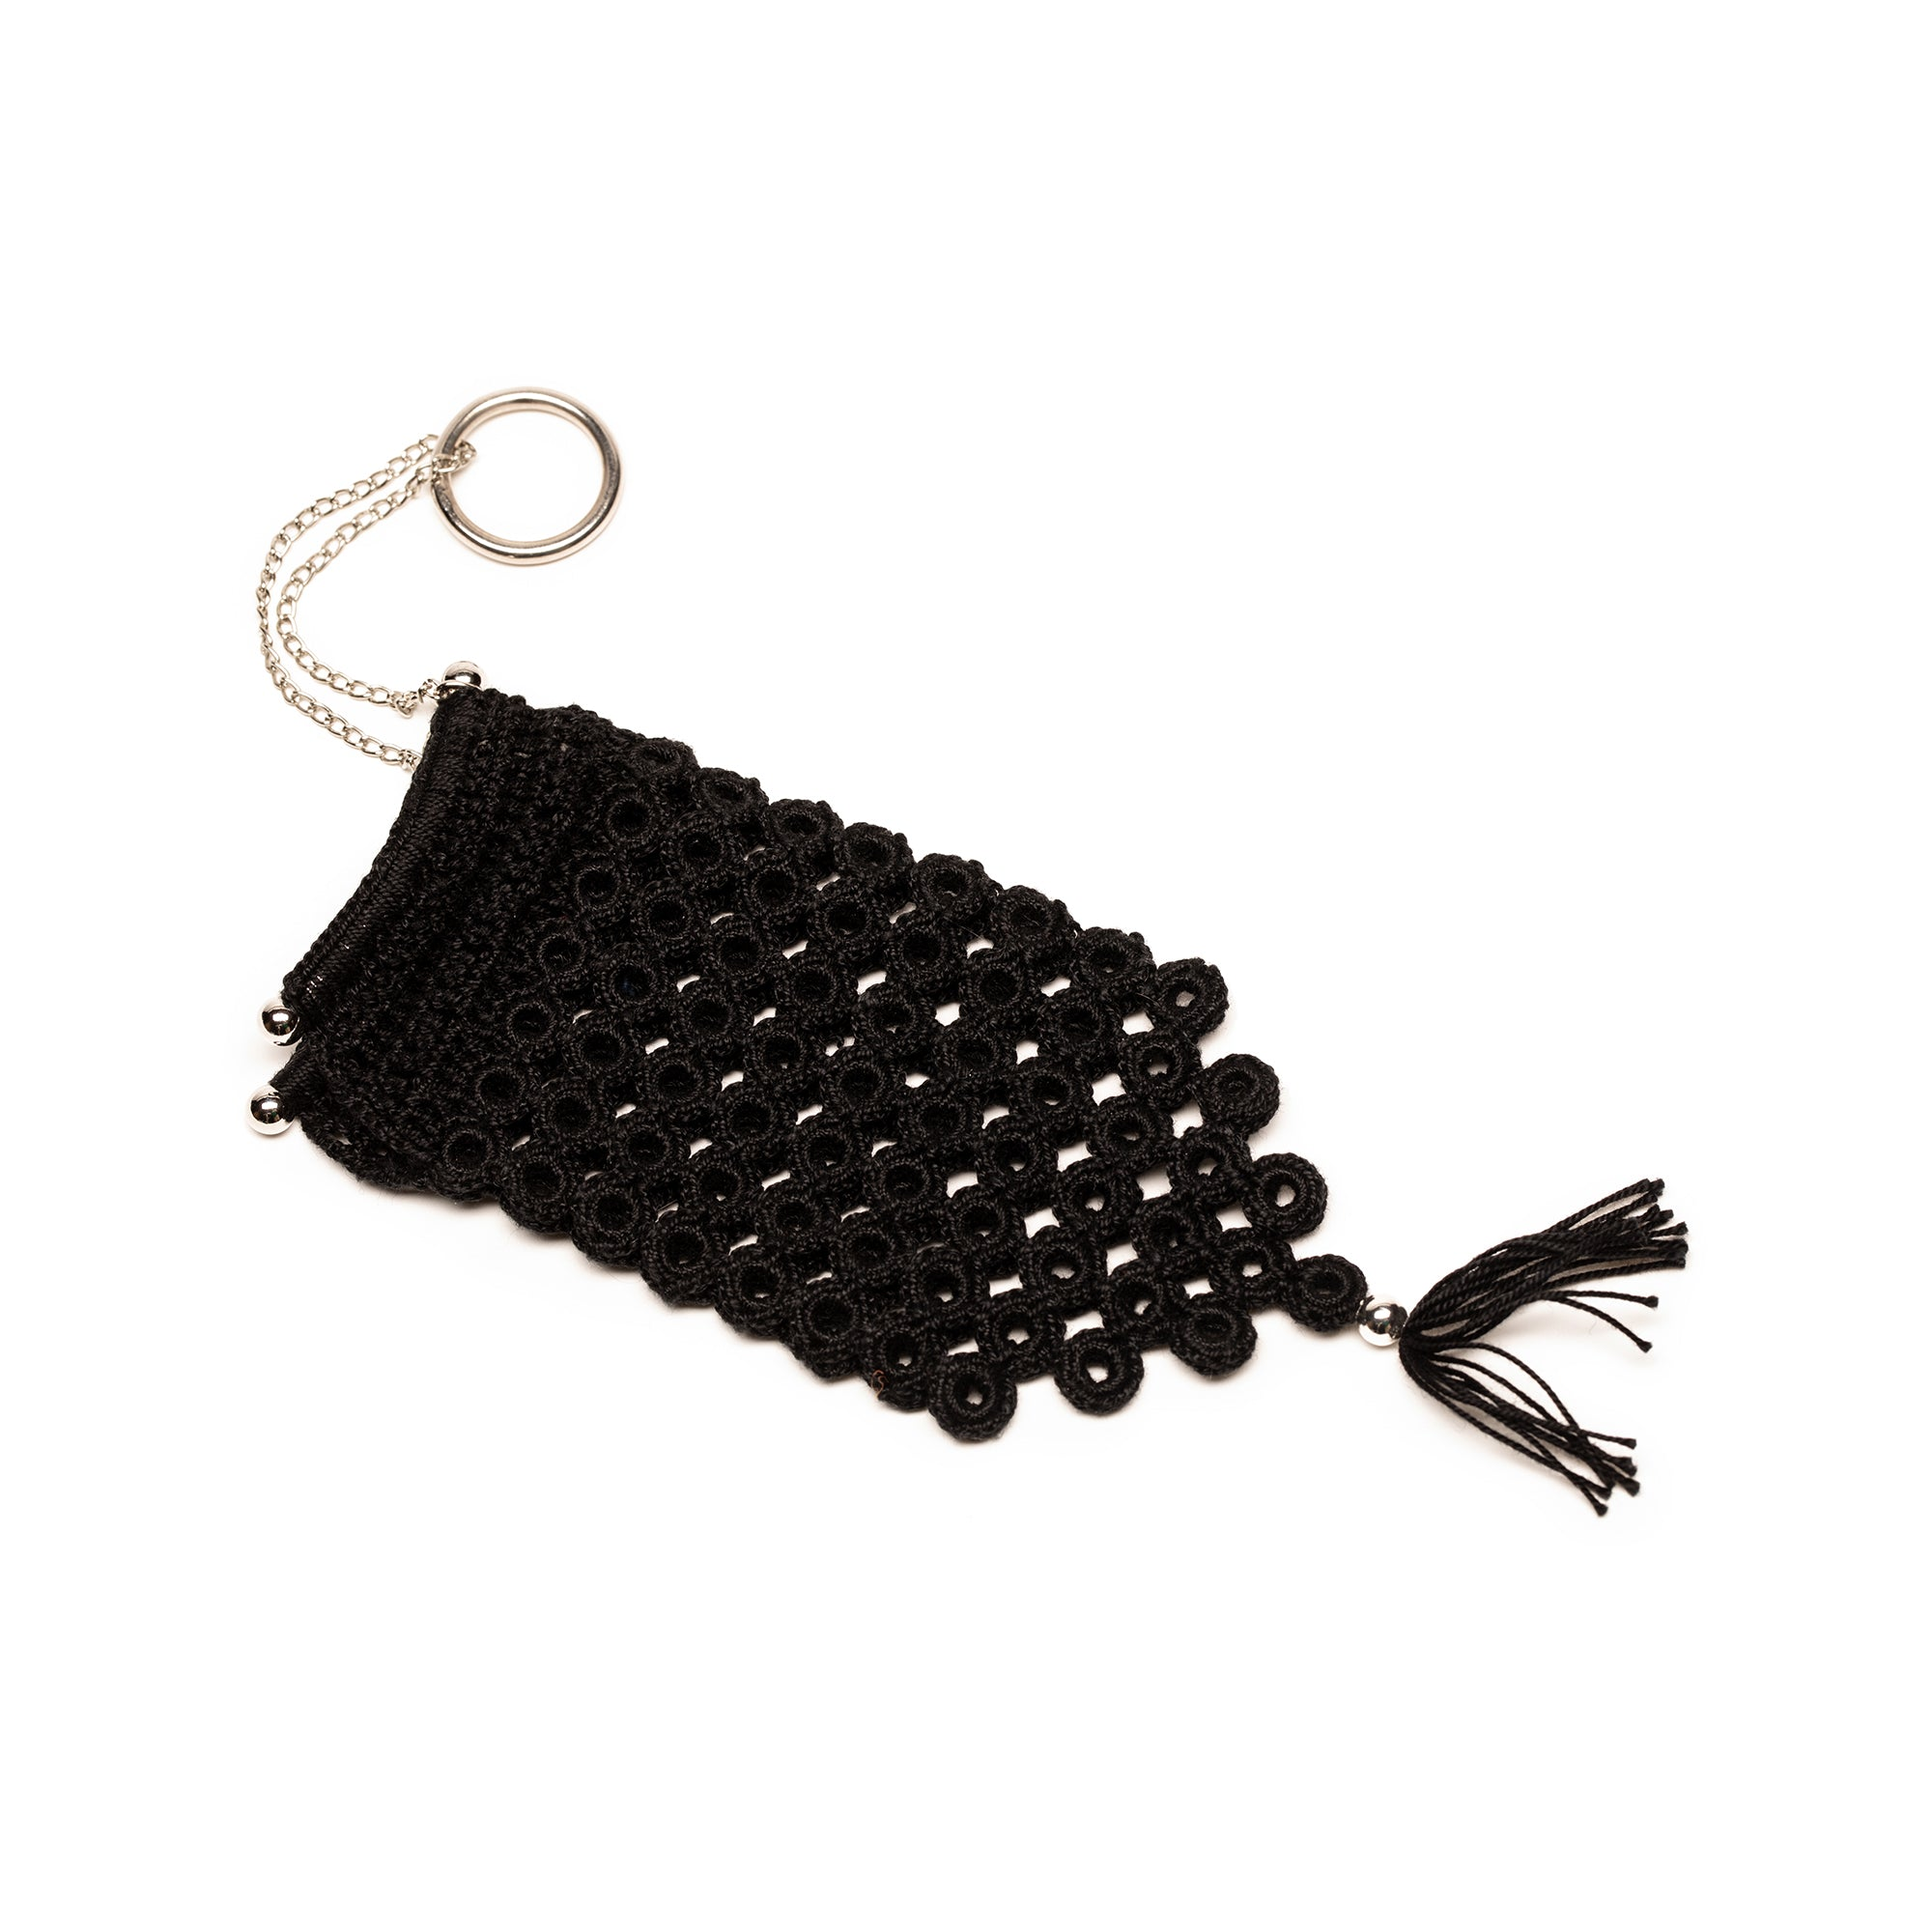 CROCHET MISER'S PURSE black and silver